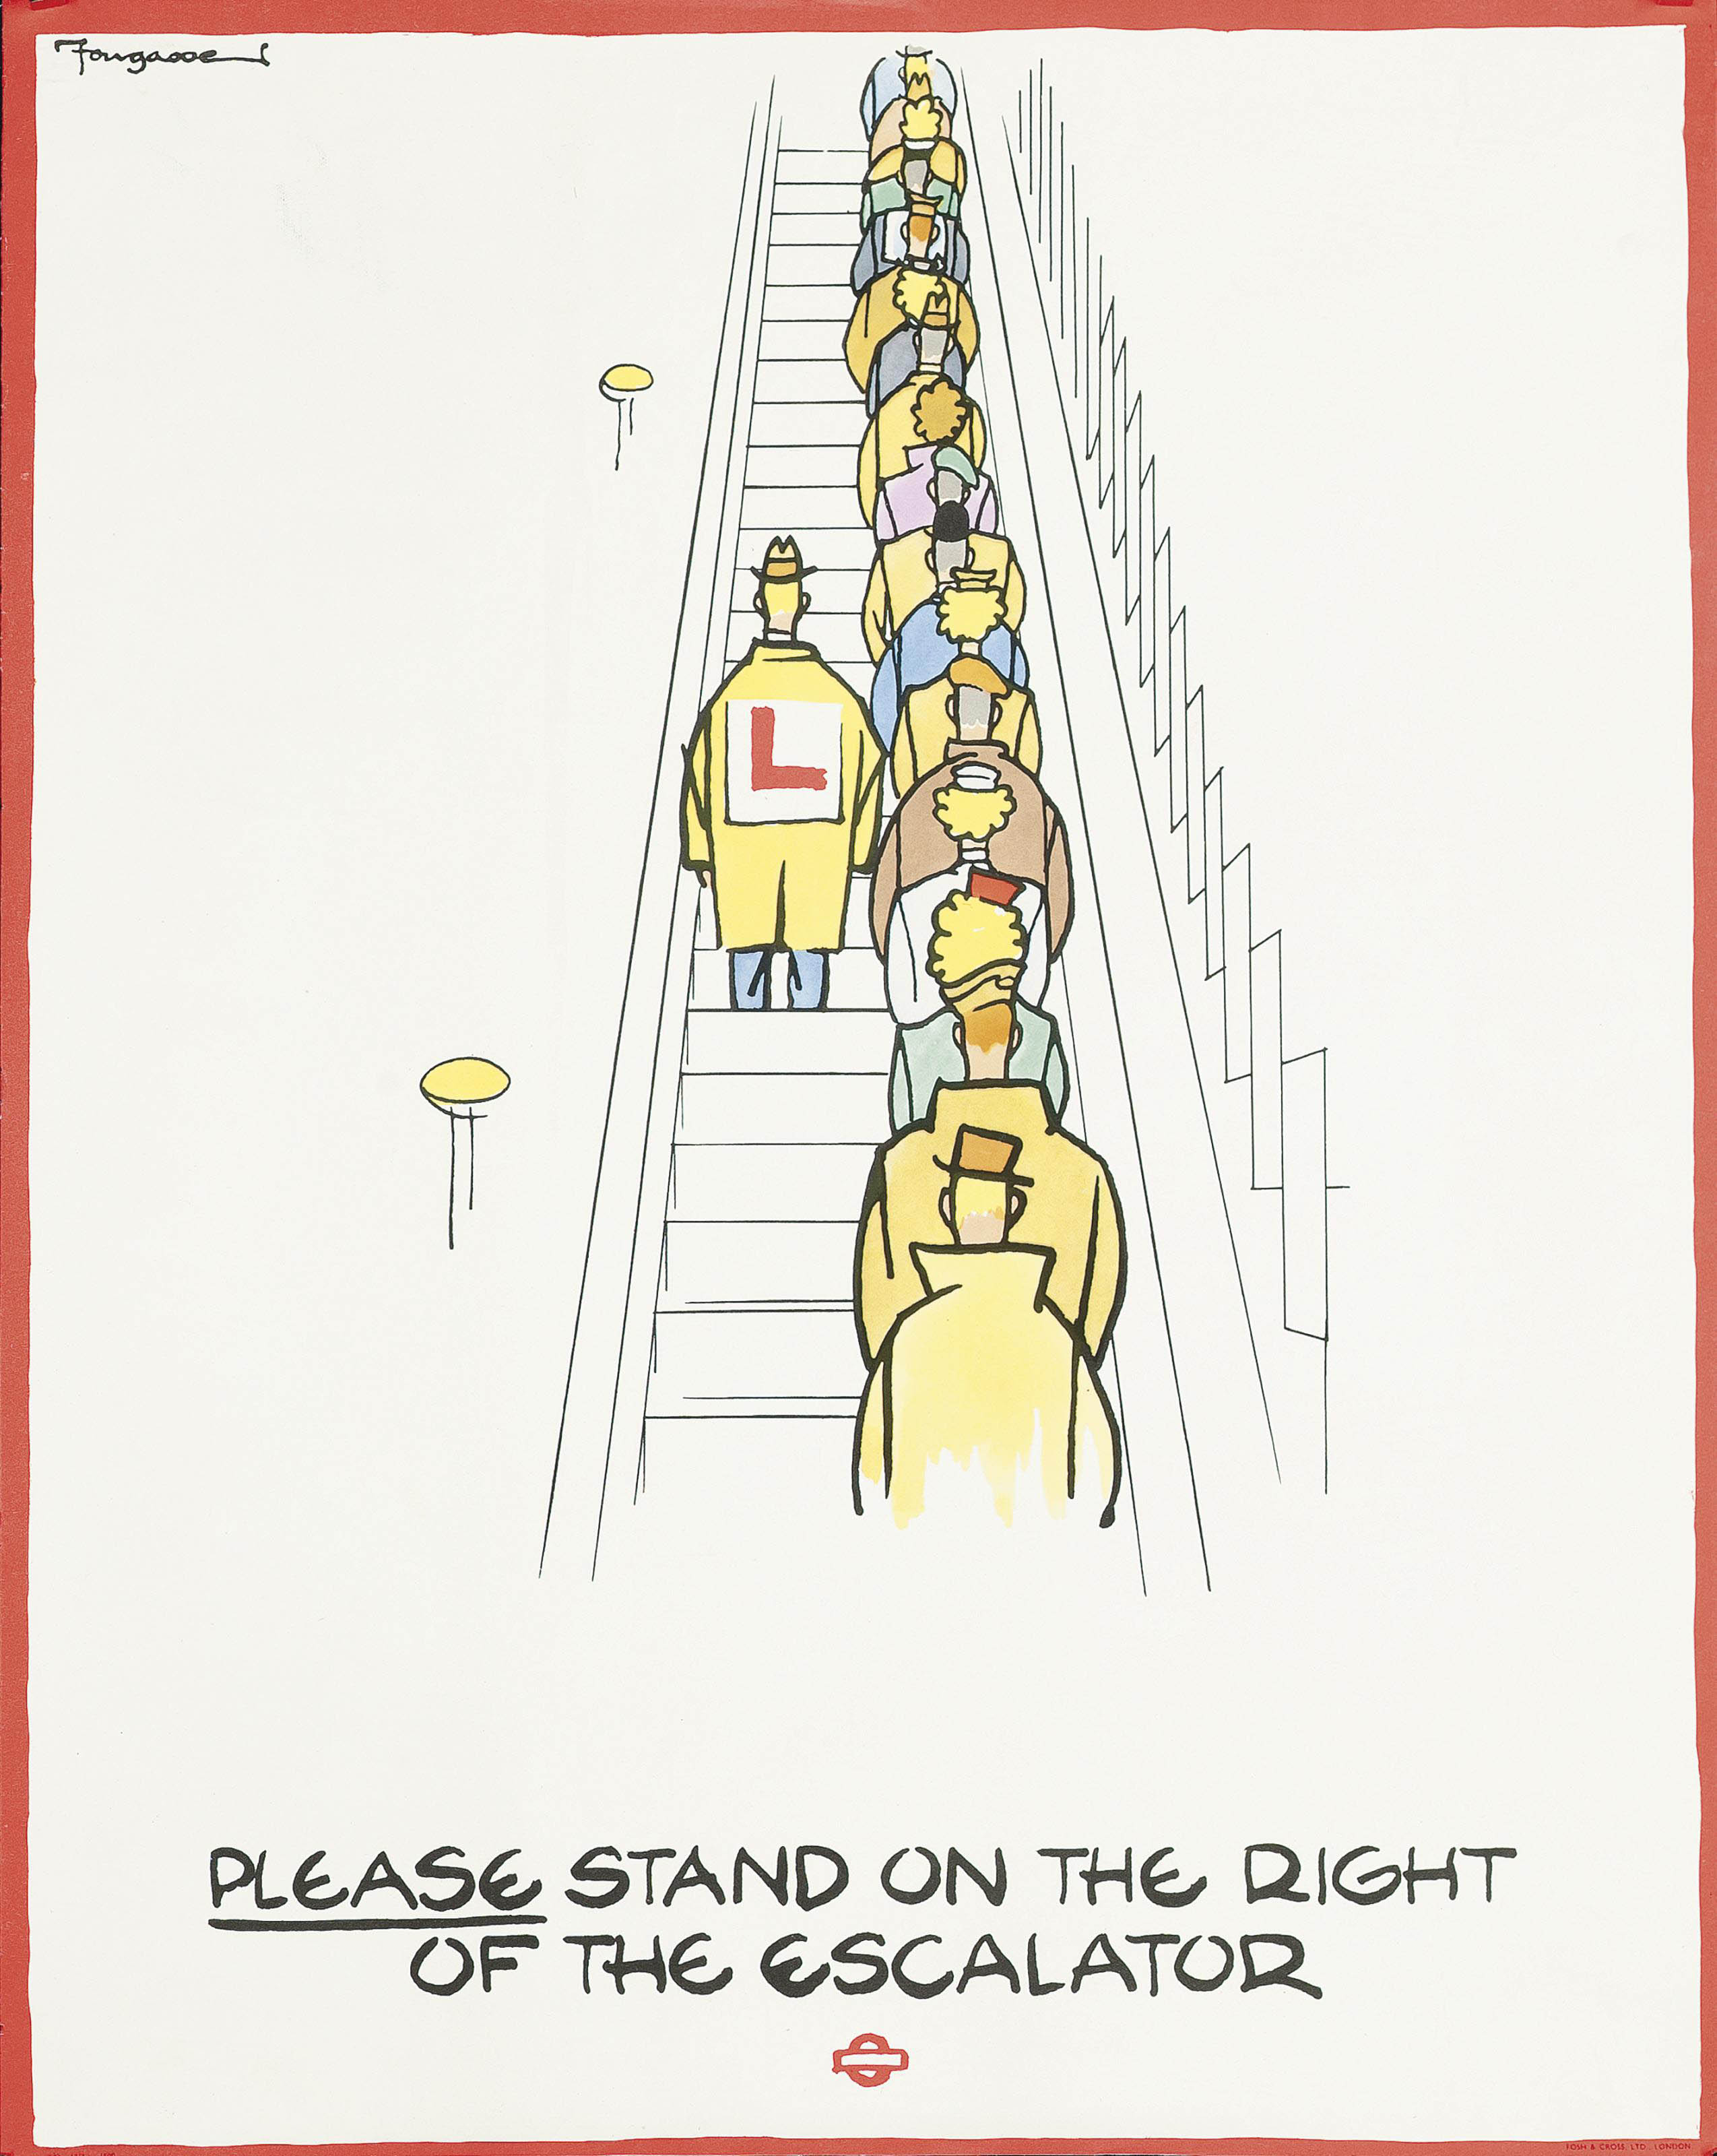 PLEASE STAND ON THE RIGHT OF THE ESCALATOR